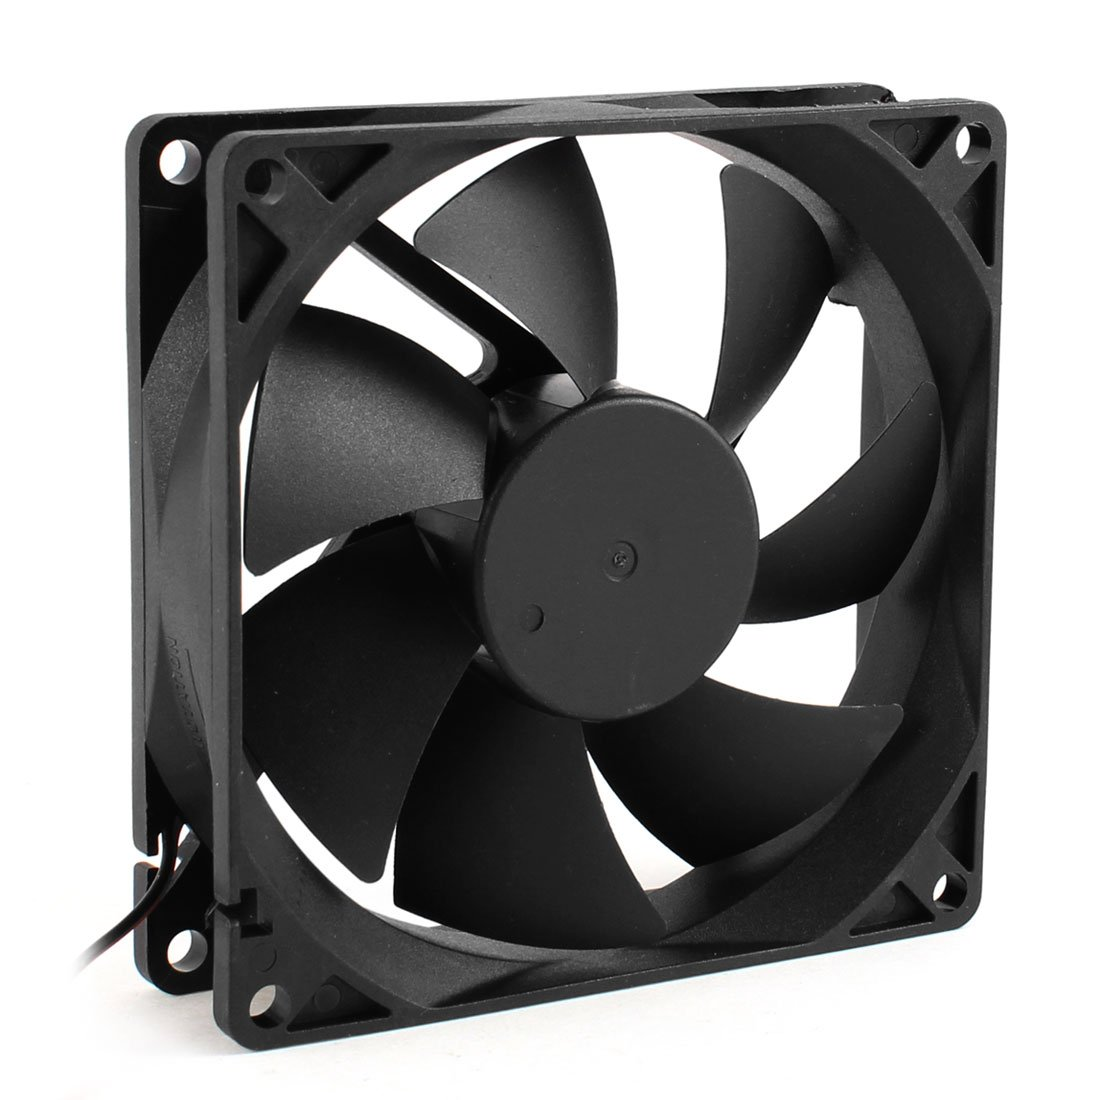 PROMOTION! Hot 92mm x 25mm 24V 2Pin Sleeve Bearing Cooling Fan for PC Case CPU Cooler 75mmx30mm dc 12v 0 24a 2 pin computer pc sleeve bearing blower cooling fan 7530 r179t drop shipping